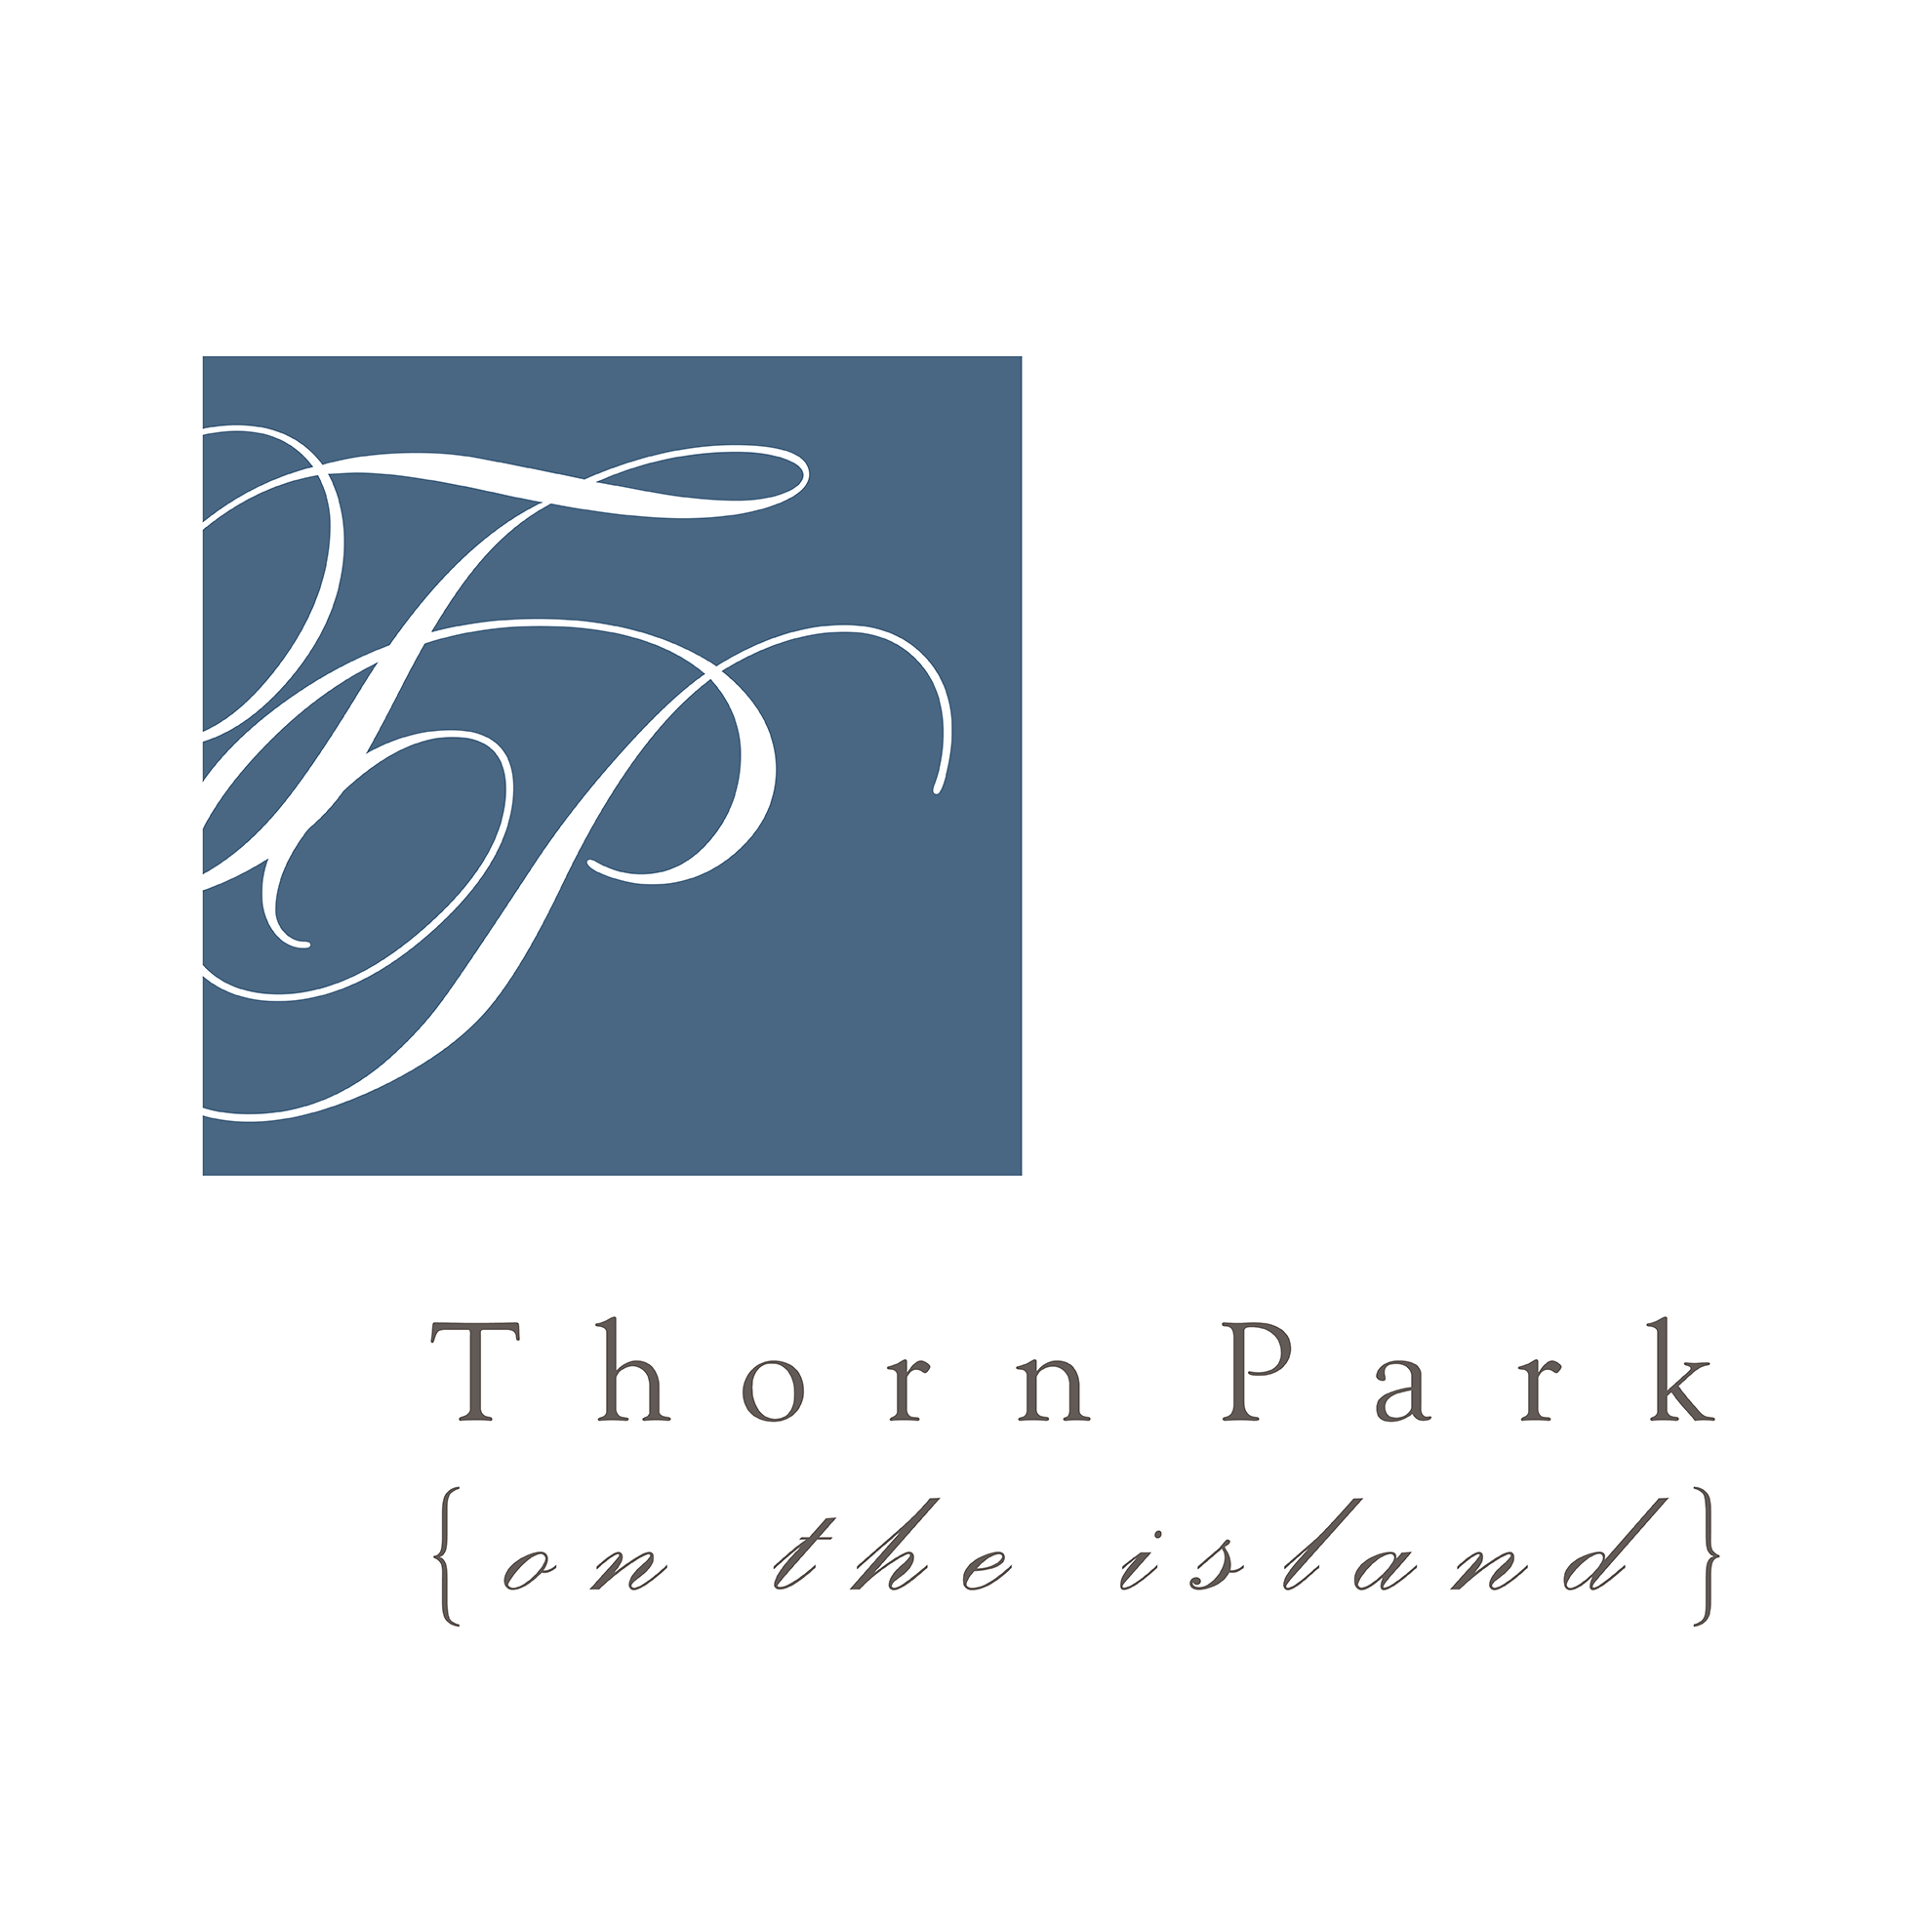 Thorn Park -on the island logo